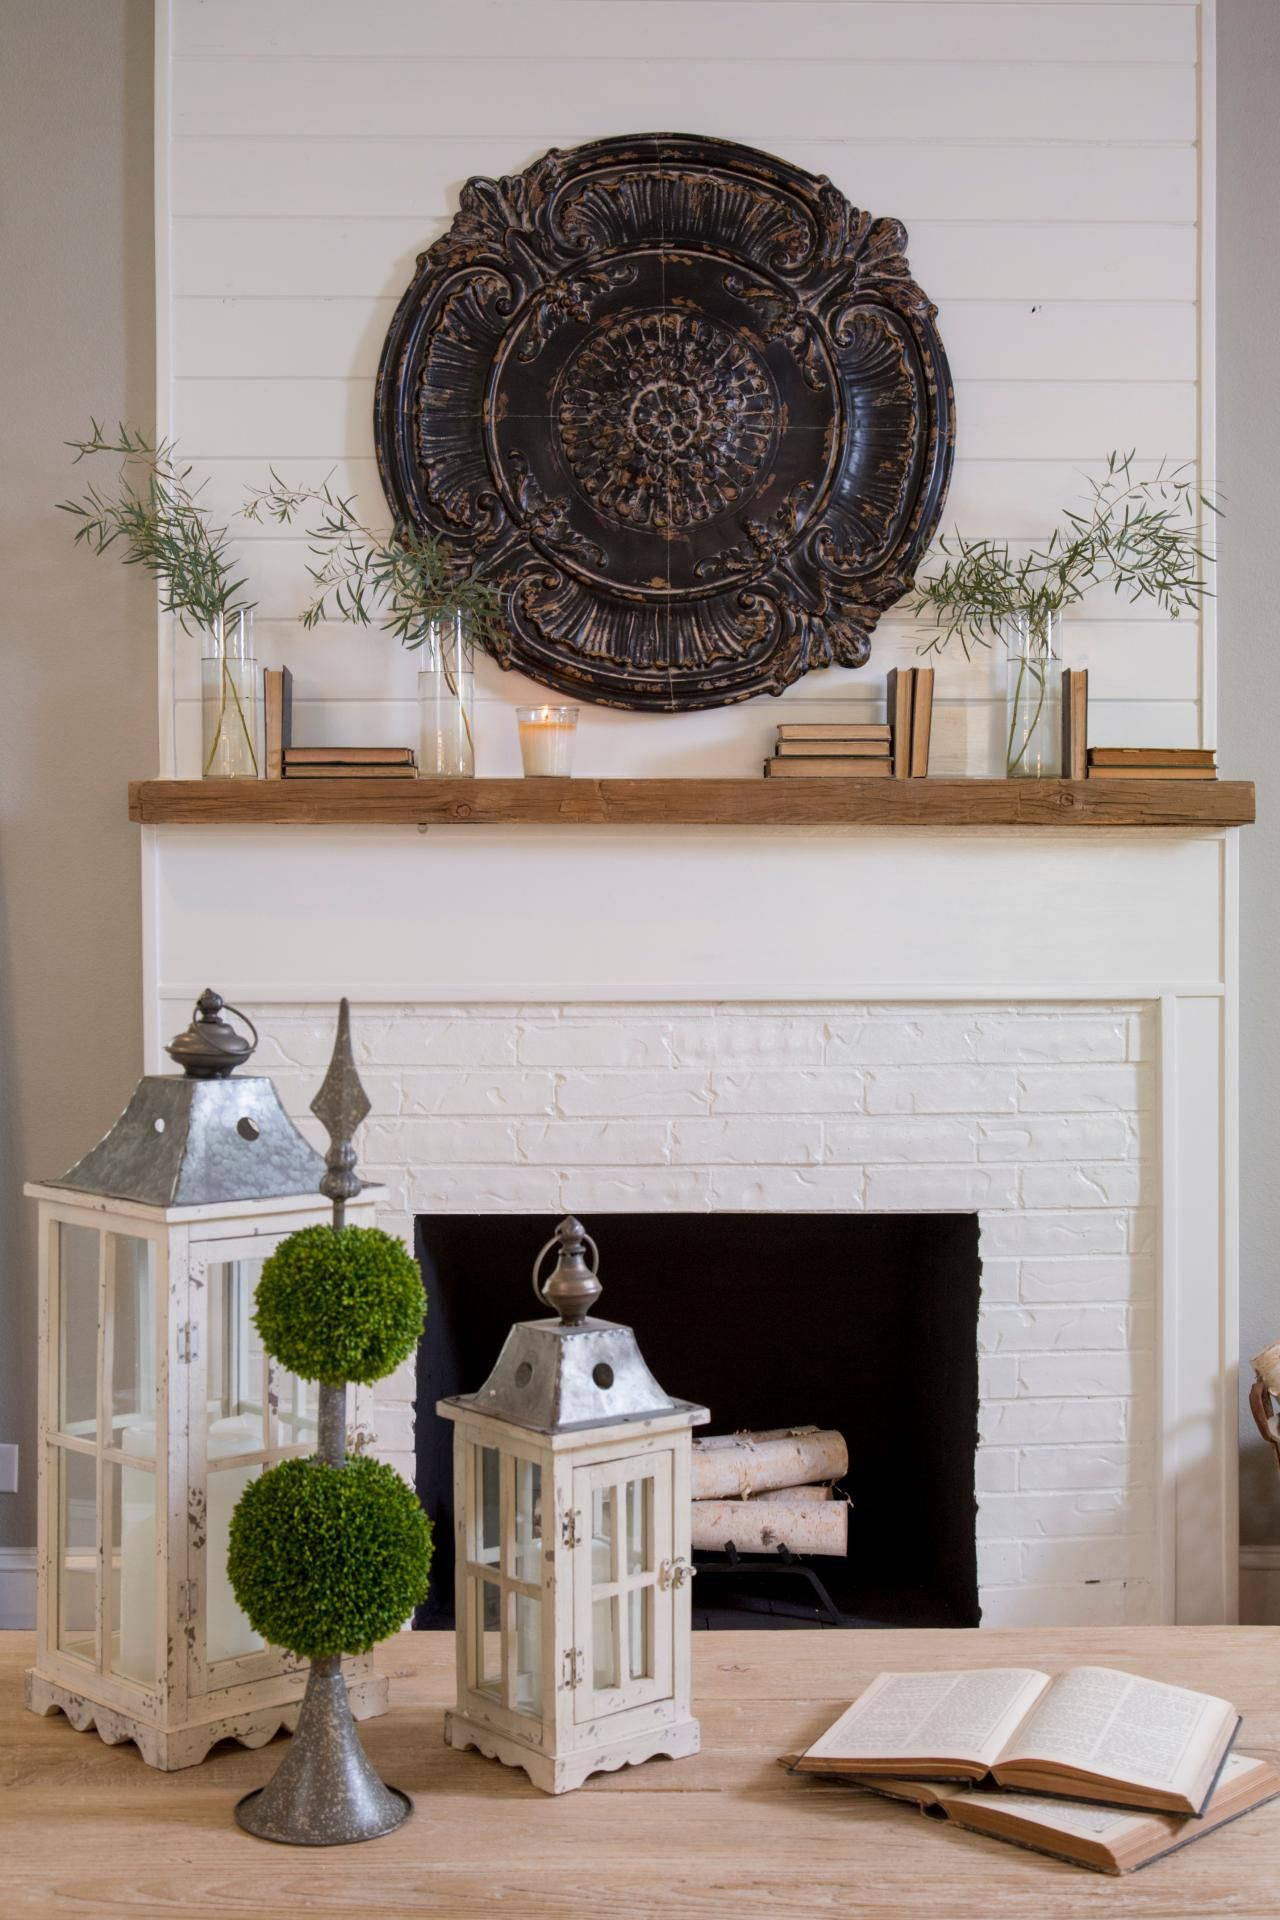 Wall Art Ideas From Chip And Joanna Gaines Fireplace